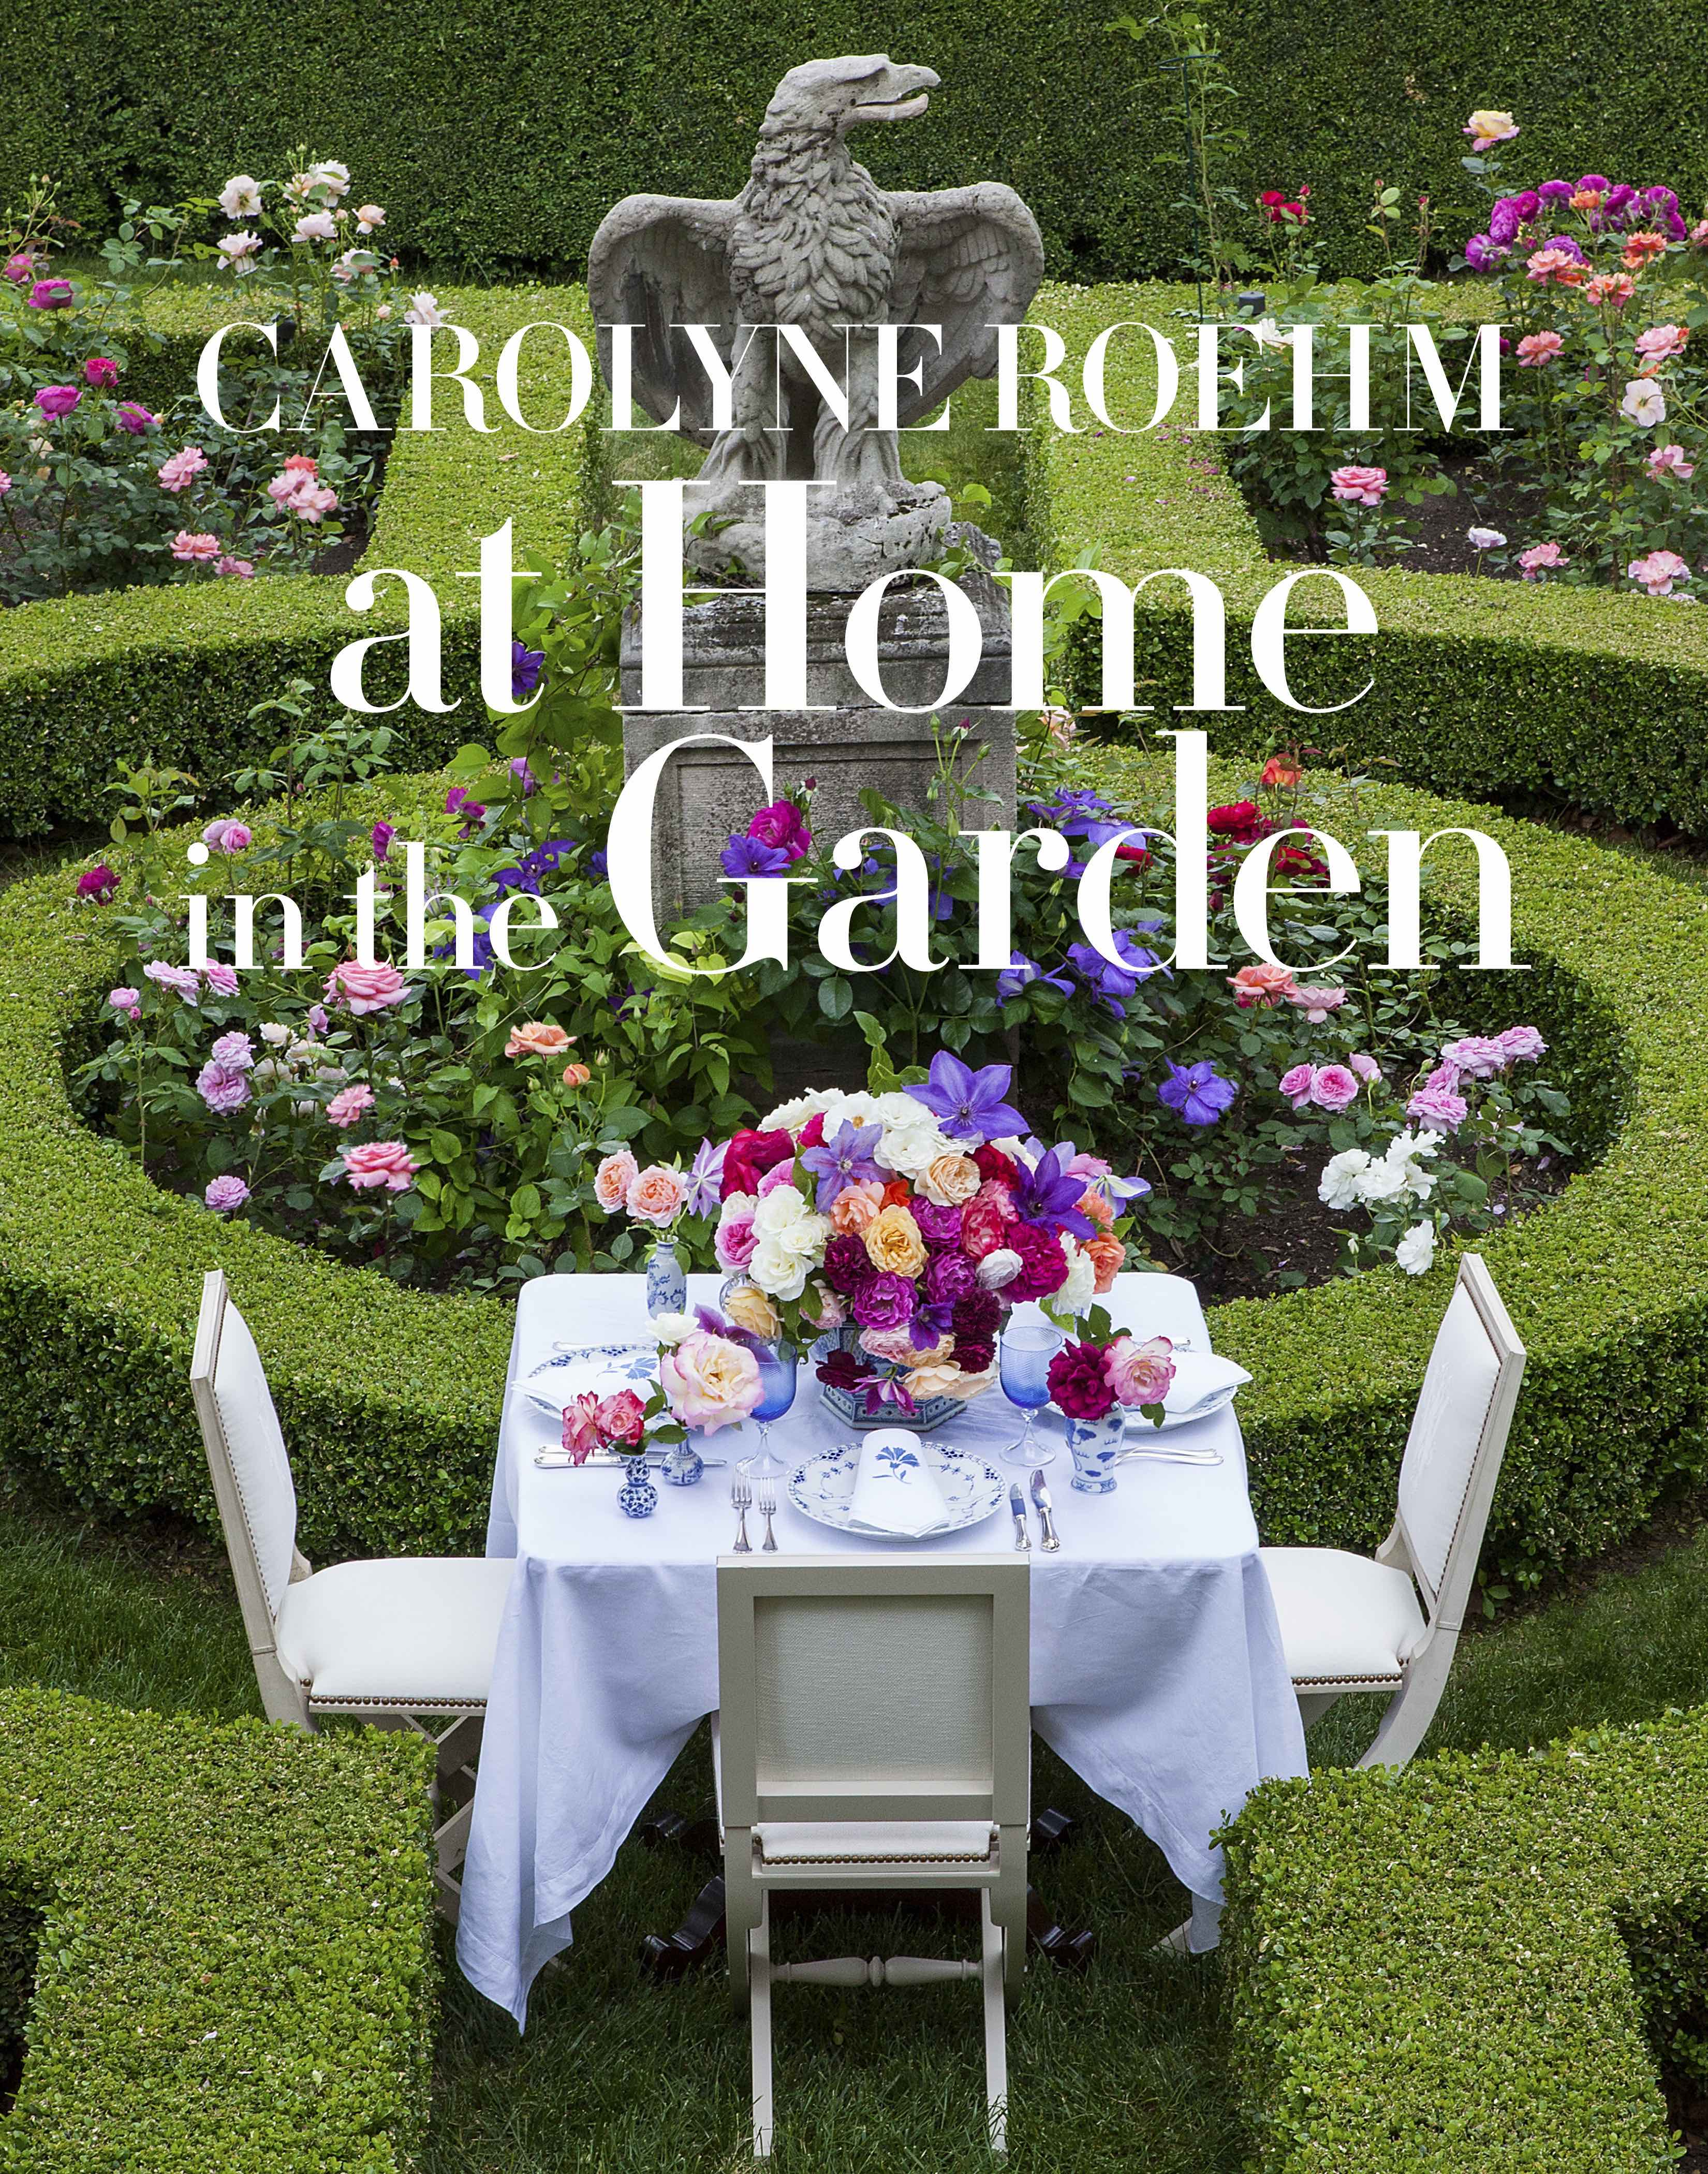 CAROLYNE ROEHM LAUNCHES 12TH BEAUTIFUL BOOK AT HOME IN